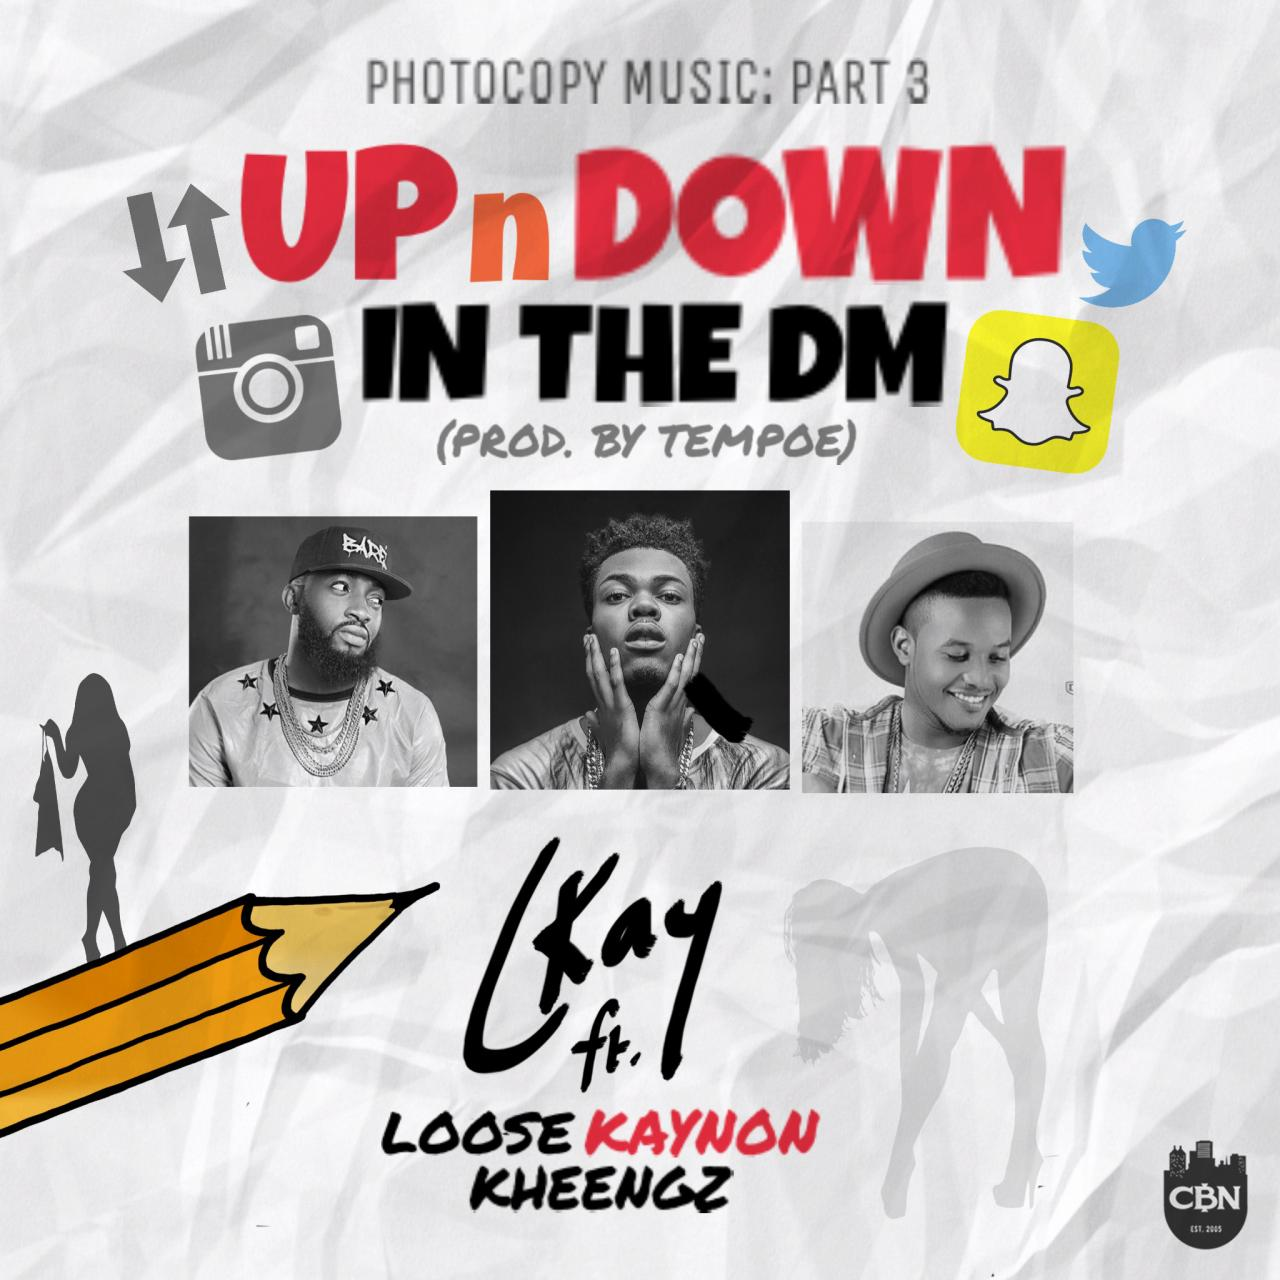 Ckay - UpnDown In The DM ft. Loose Kaynon & Kheengz Mp3 download